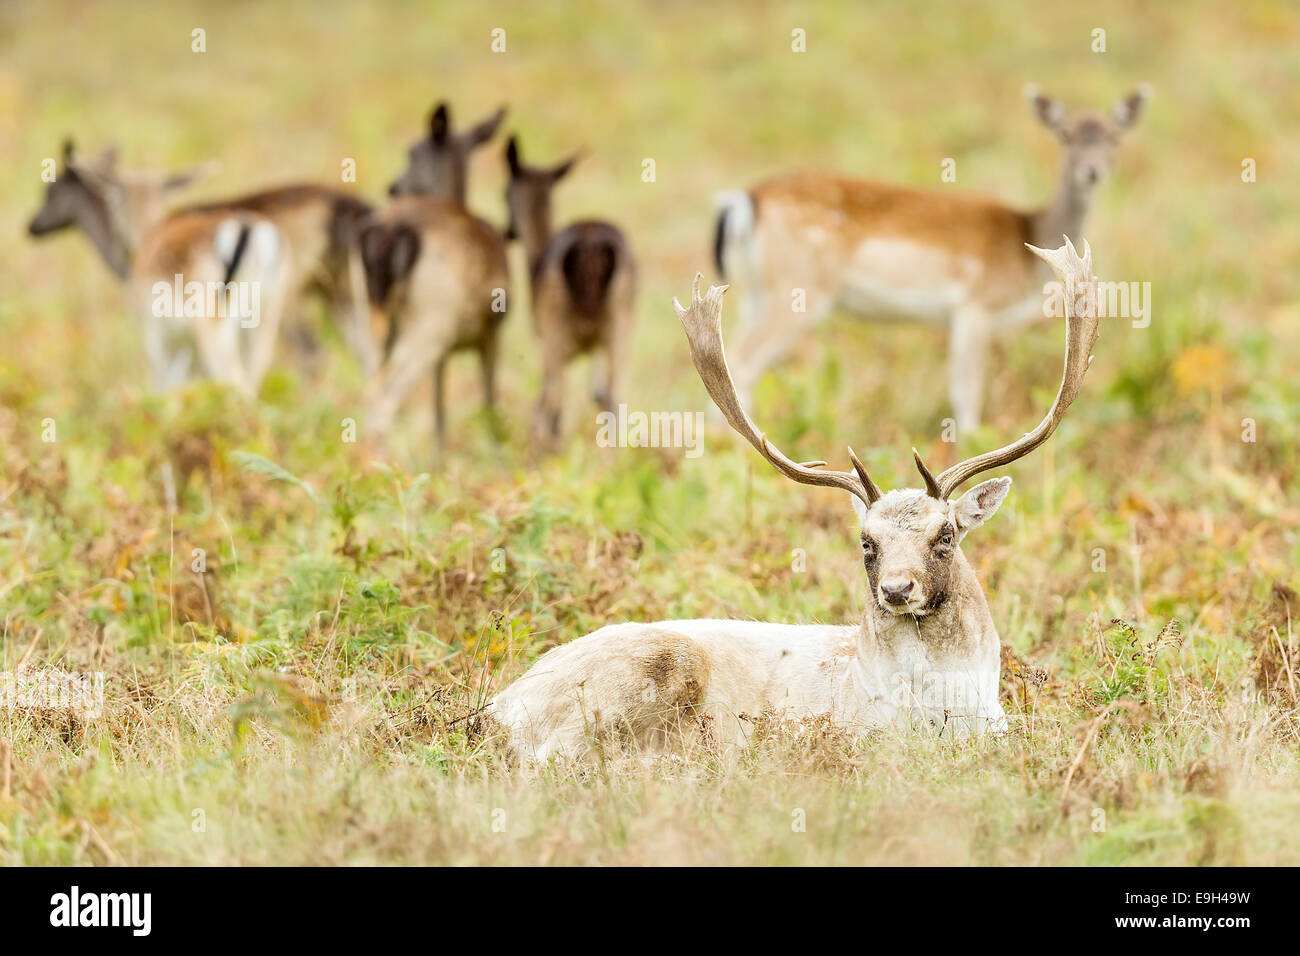 Fallow deer (Dama dama) stag sitting in front of harem of hinds during annual rut - Stock Image